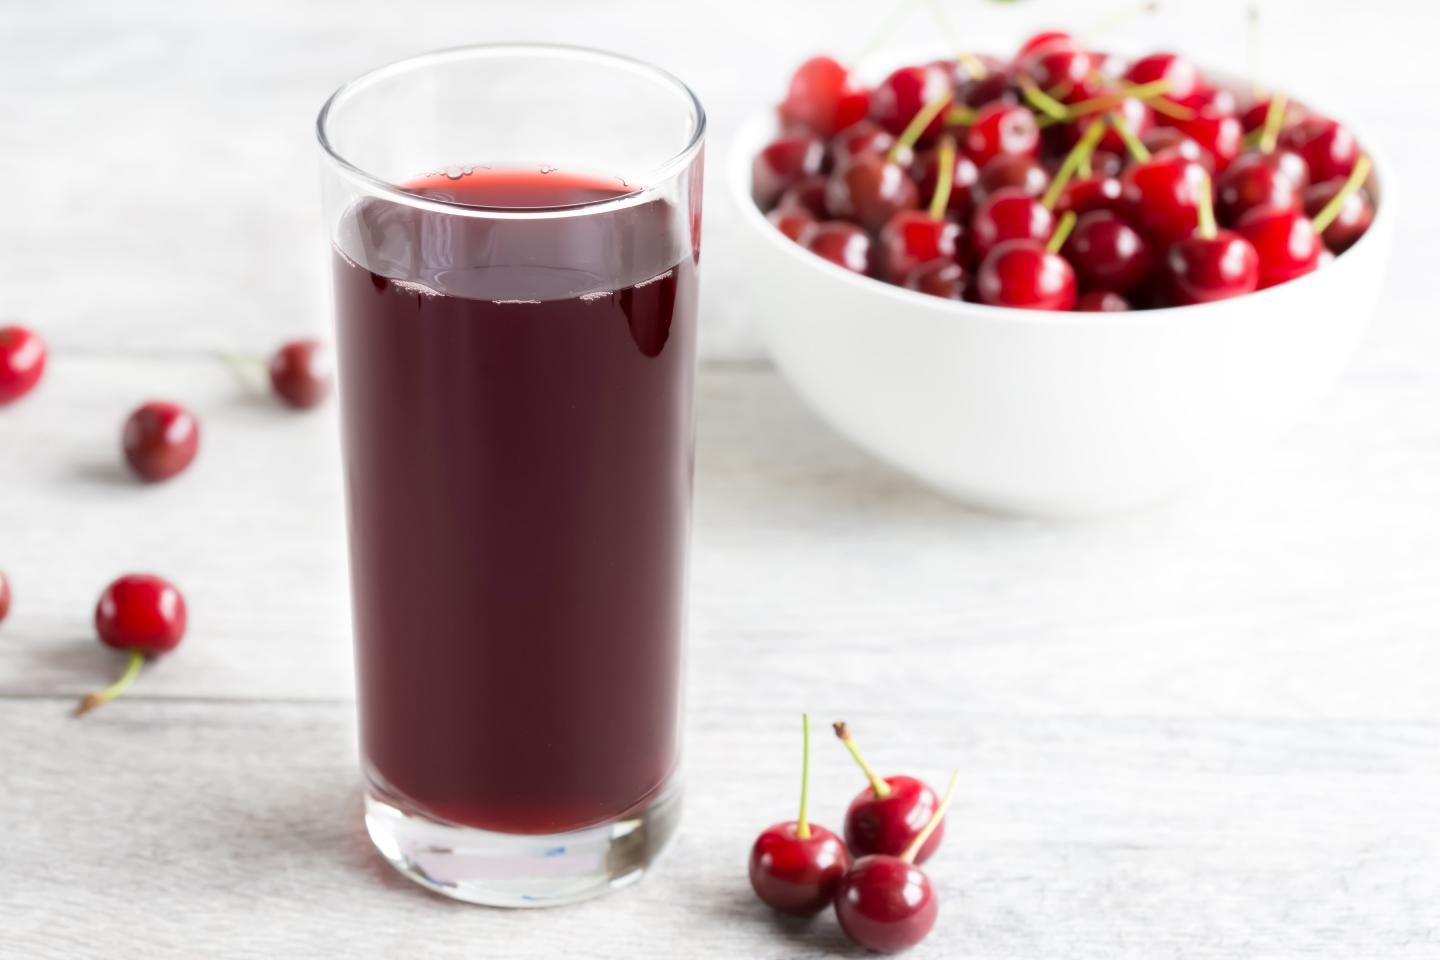 Tart Cherry Juice Concentrate Found to Help Endurance Recovery